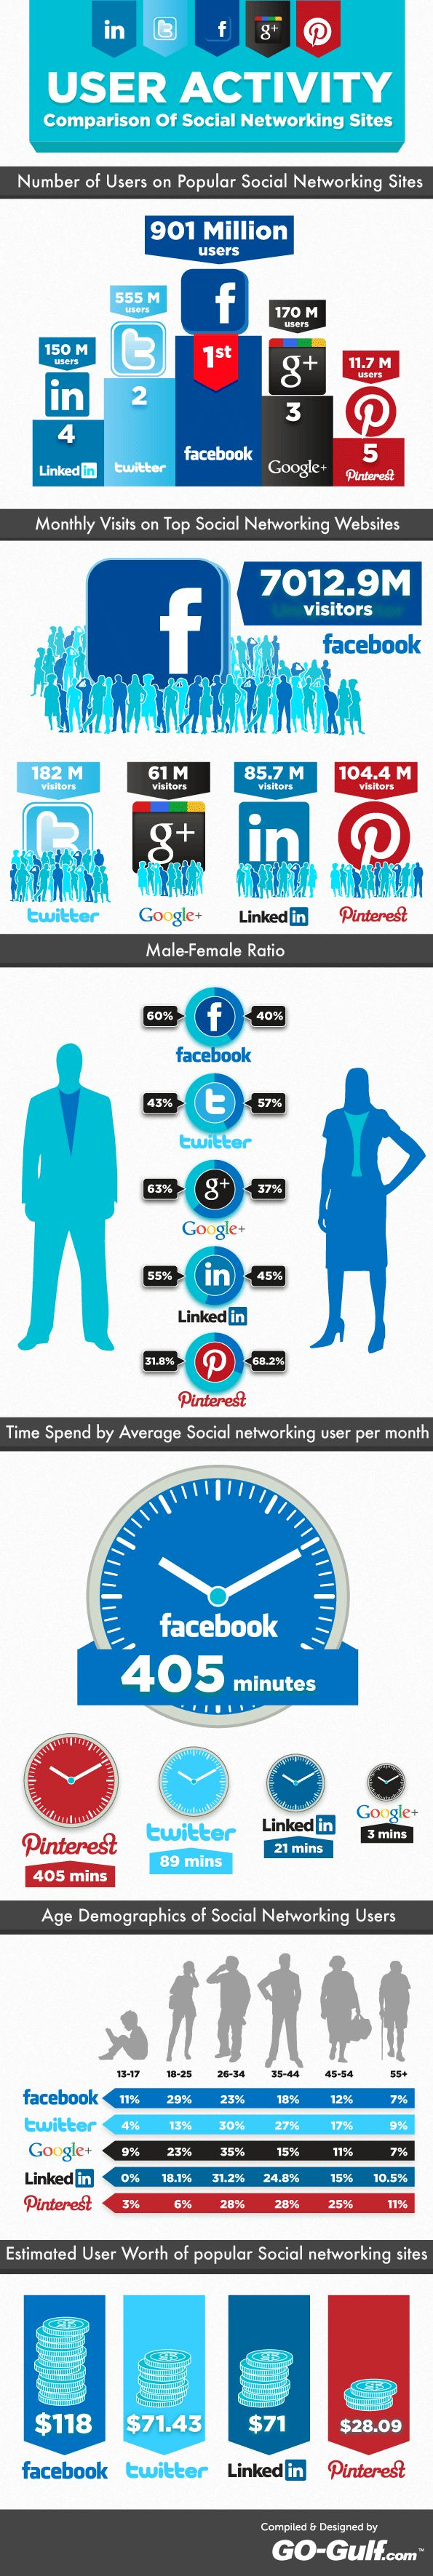 Cool INFOGRAPH on different social media usage.  Facebook blows all the others away combined.  Men seem to use social media the most...I didn't see that coming.  Now it comes down to motivation....why?